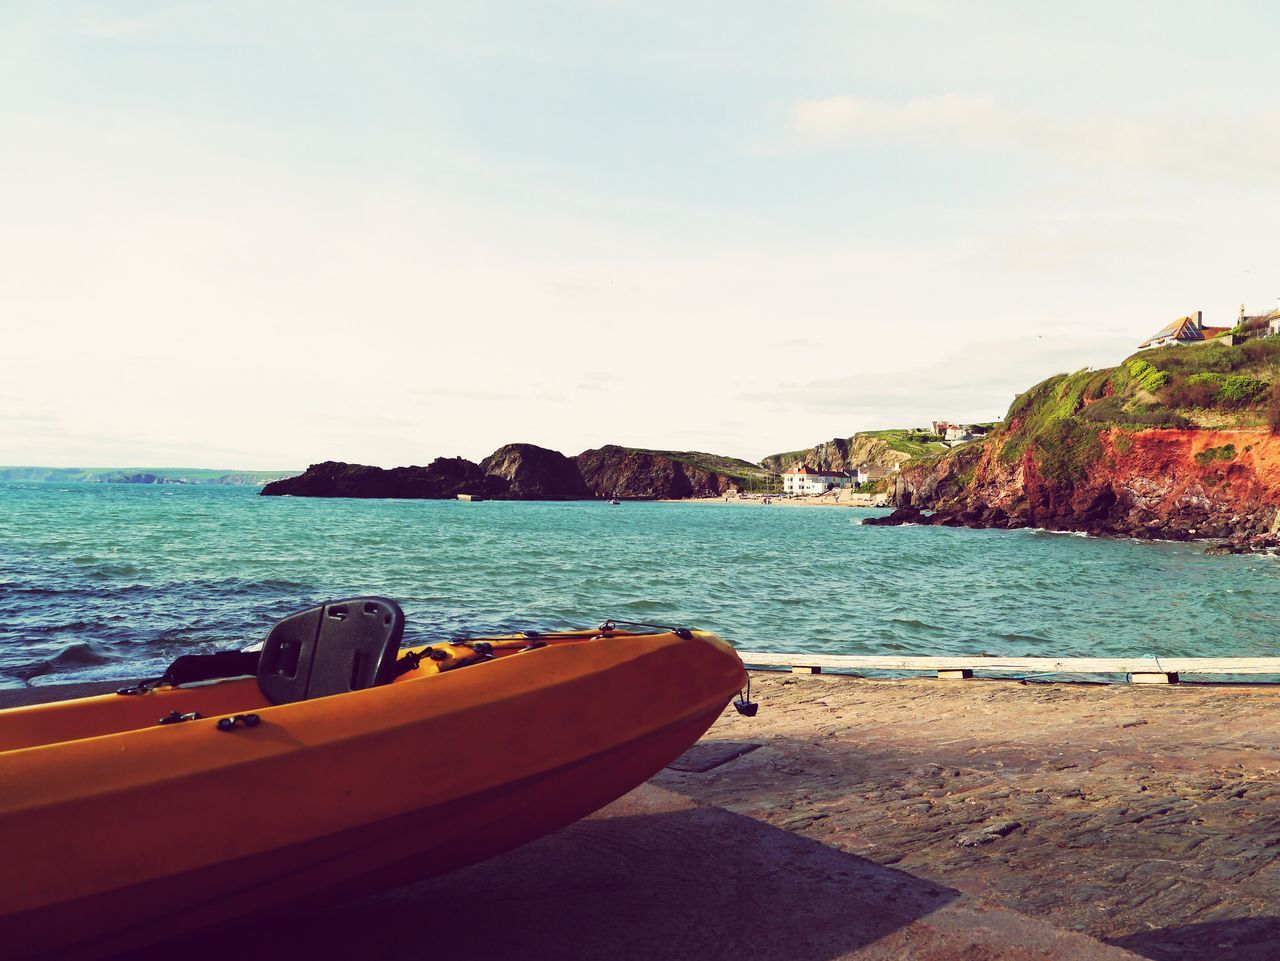 Sea Water Sky Nautical Vessel Beauty In Nature Beach Nature Transportation Outdoors Scenics No People Horizon Over Water Day EyeEmNewHere Nature Devon Hope Cove Happy Relaxing